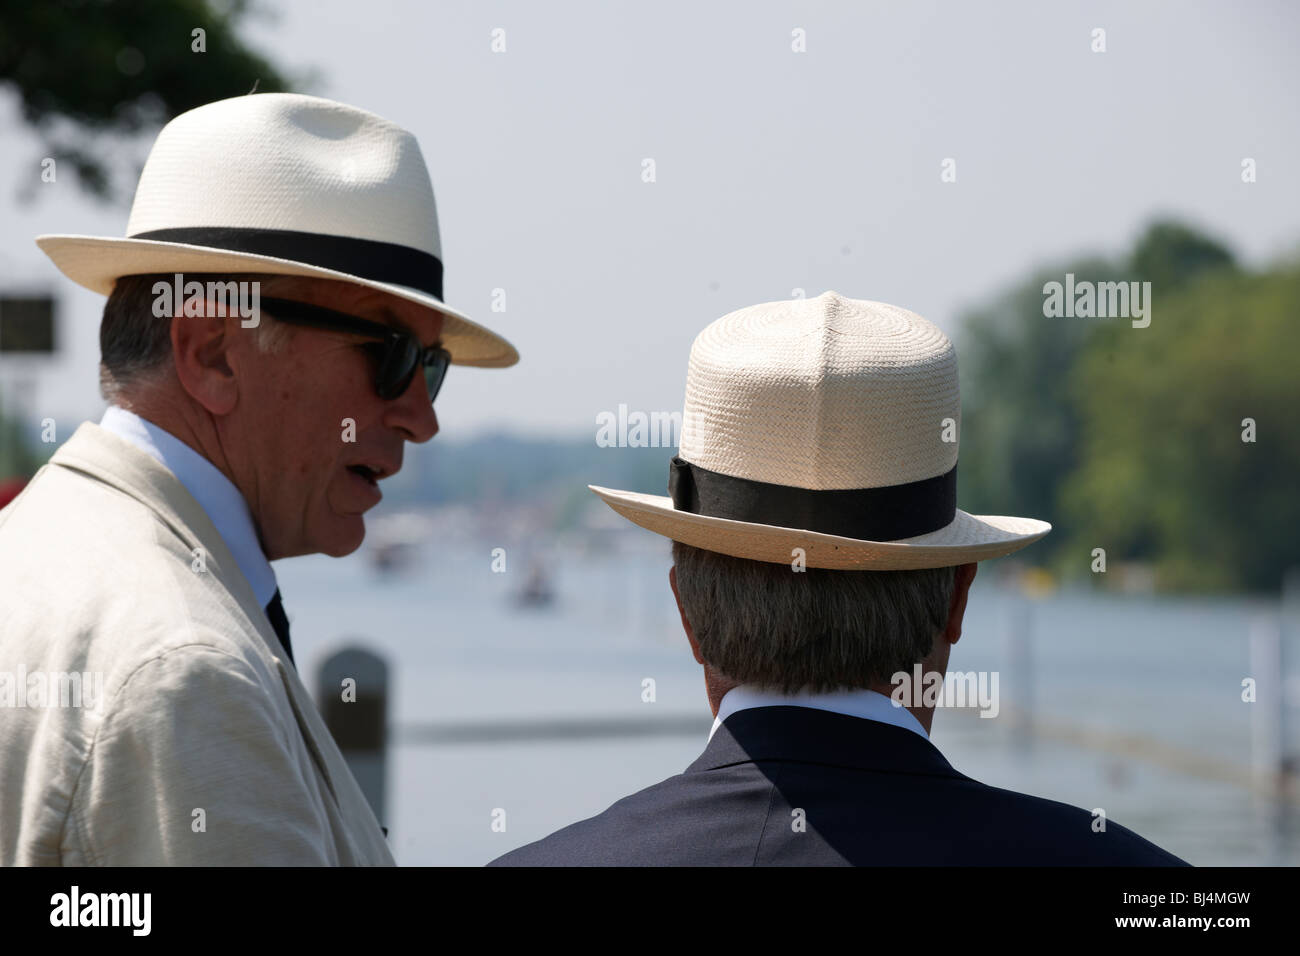 Spectators on river bank at Henley Regatta with Panama hats - Stock Image